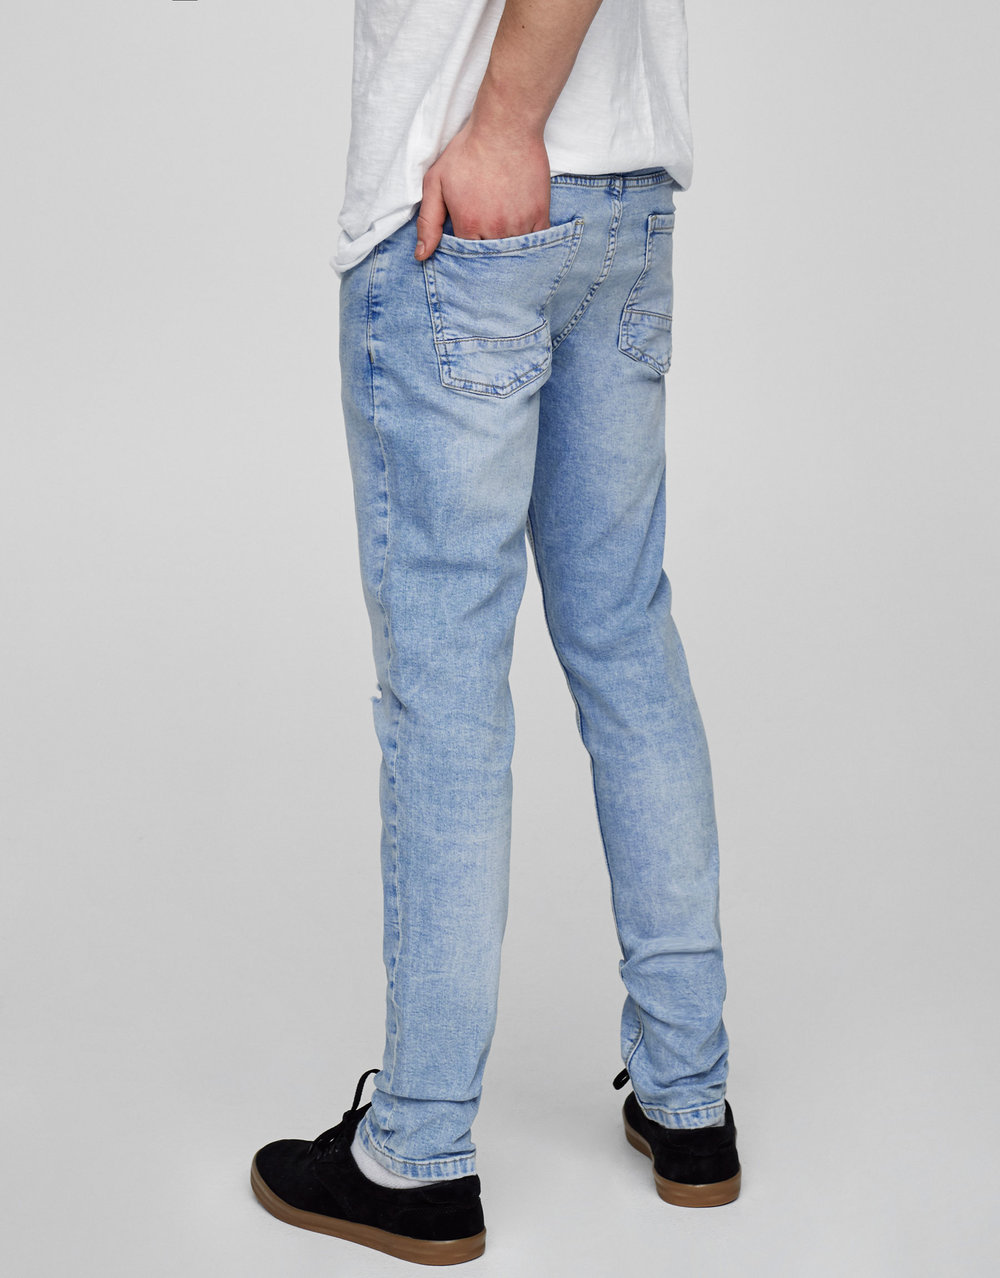 pull_and_bear_light_blue_skinny_jeans2.jpg